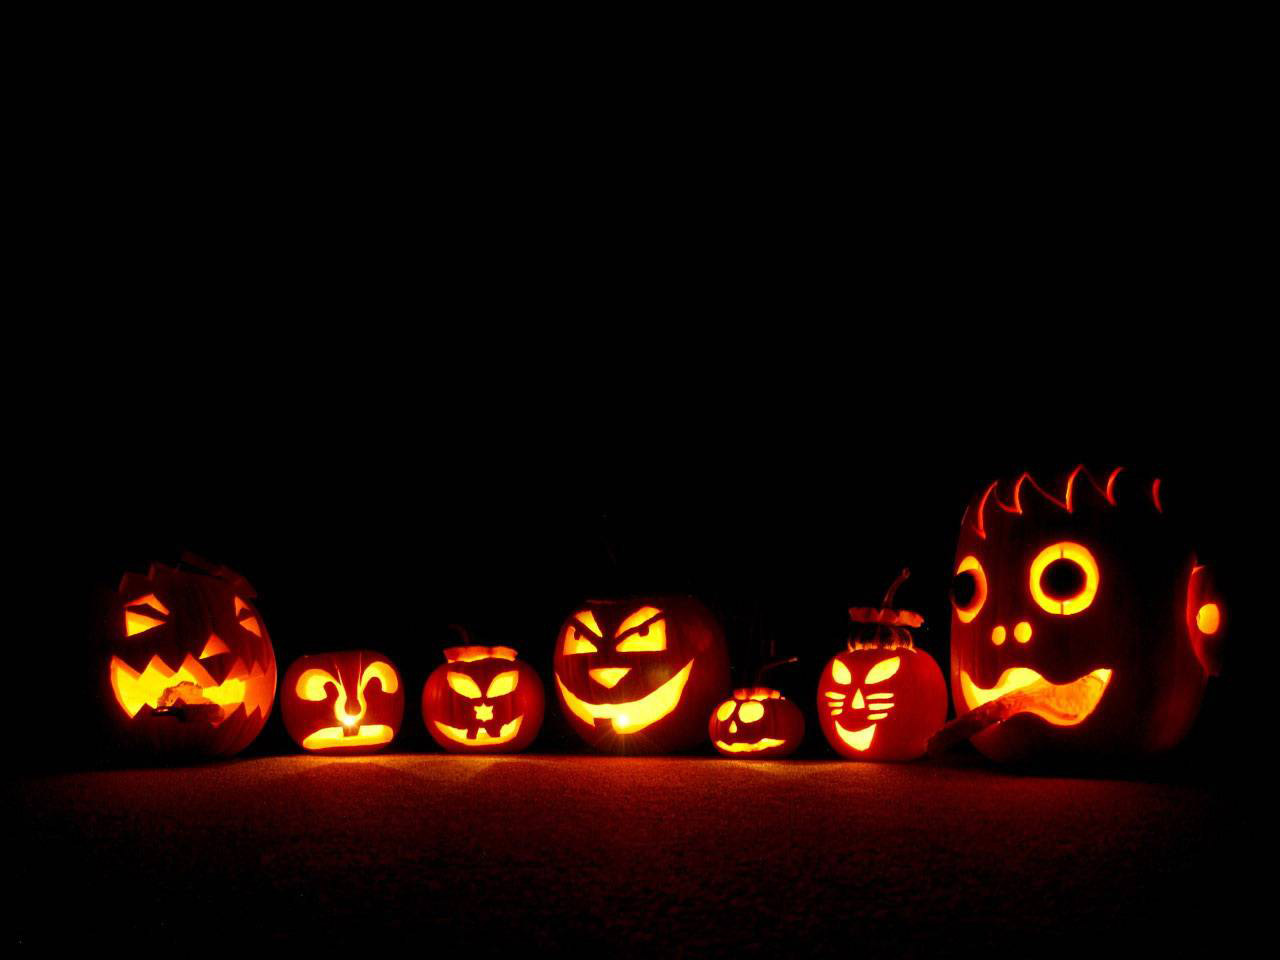 to download wallpapers just right click on pictures and select - Free Halloween Pictures To Download